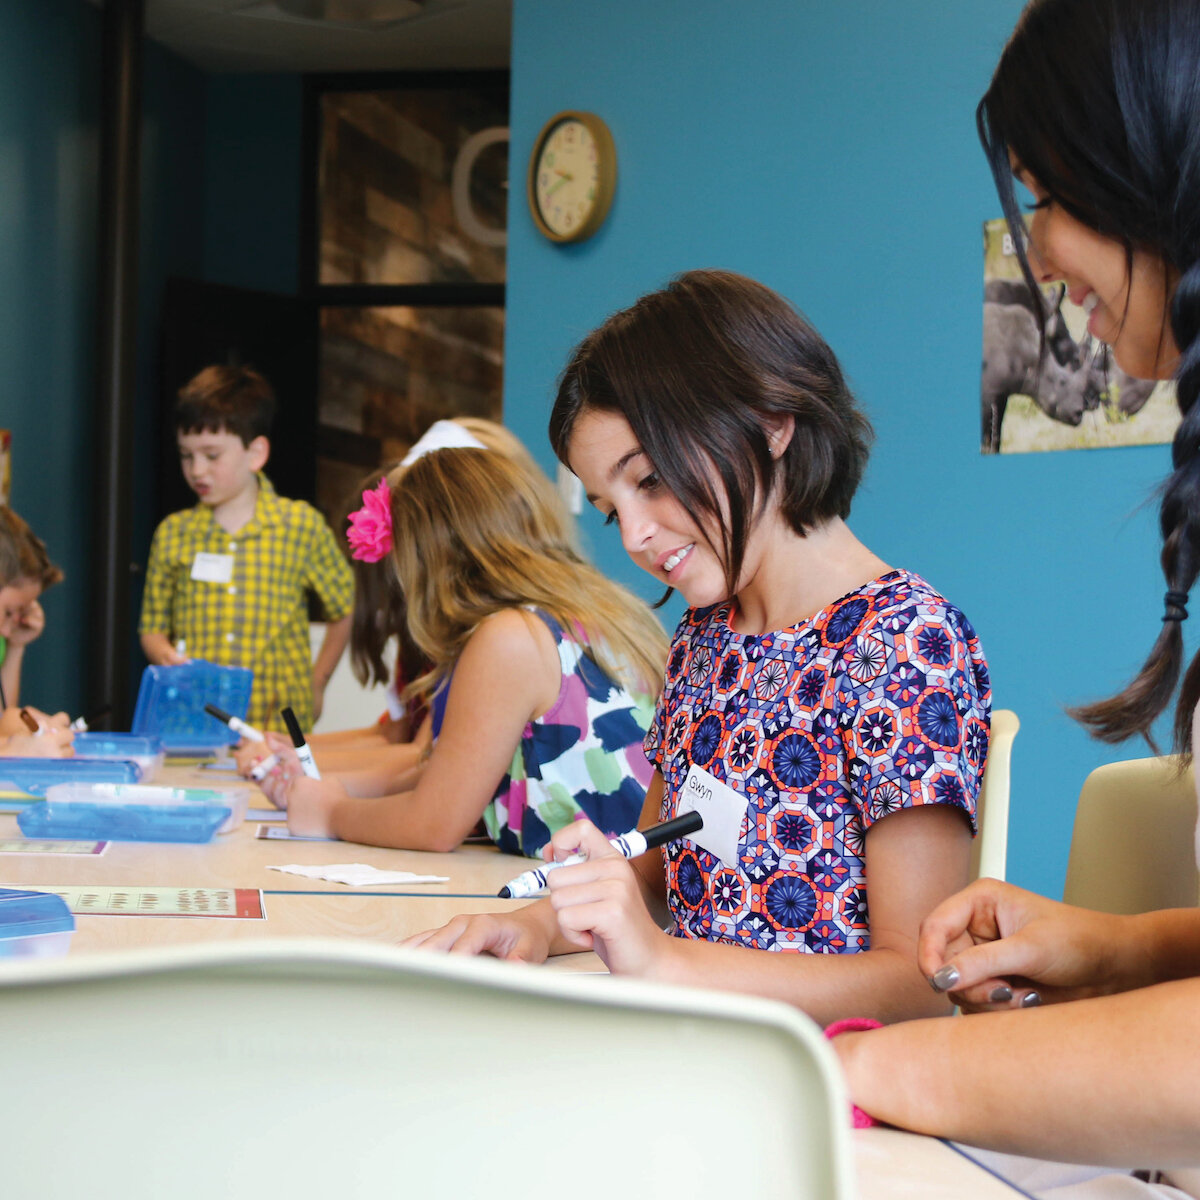 Children's Ministry - We're passionate about helping kids experience God's love on their level through stories, games, crafts, and time with friends.